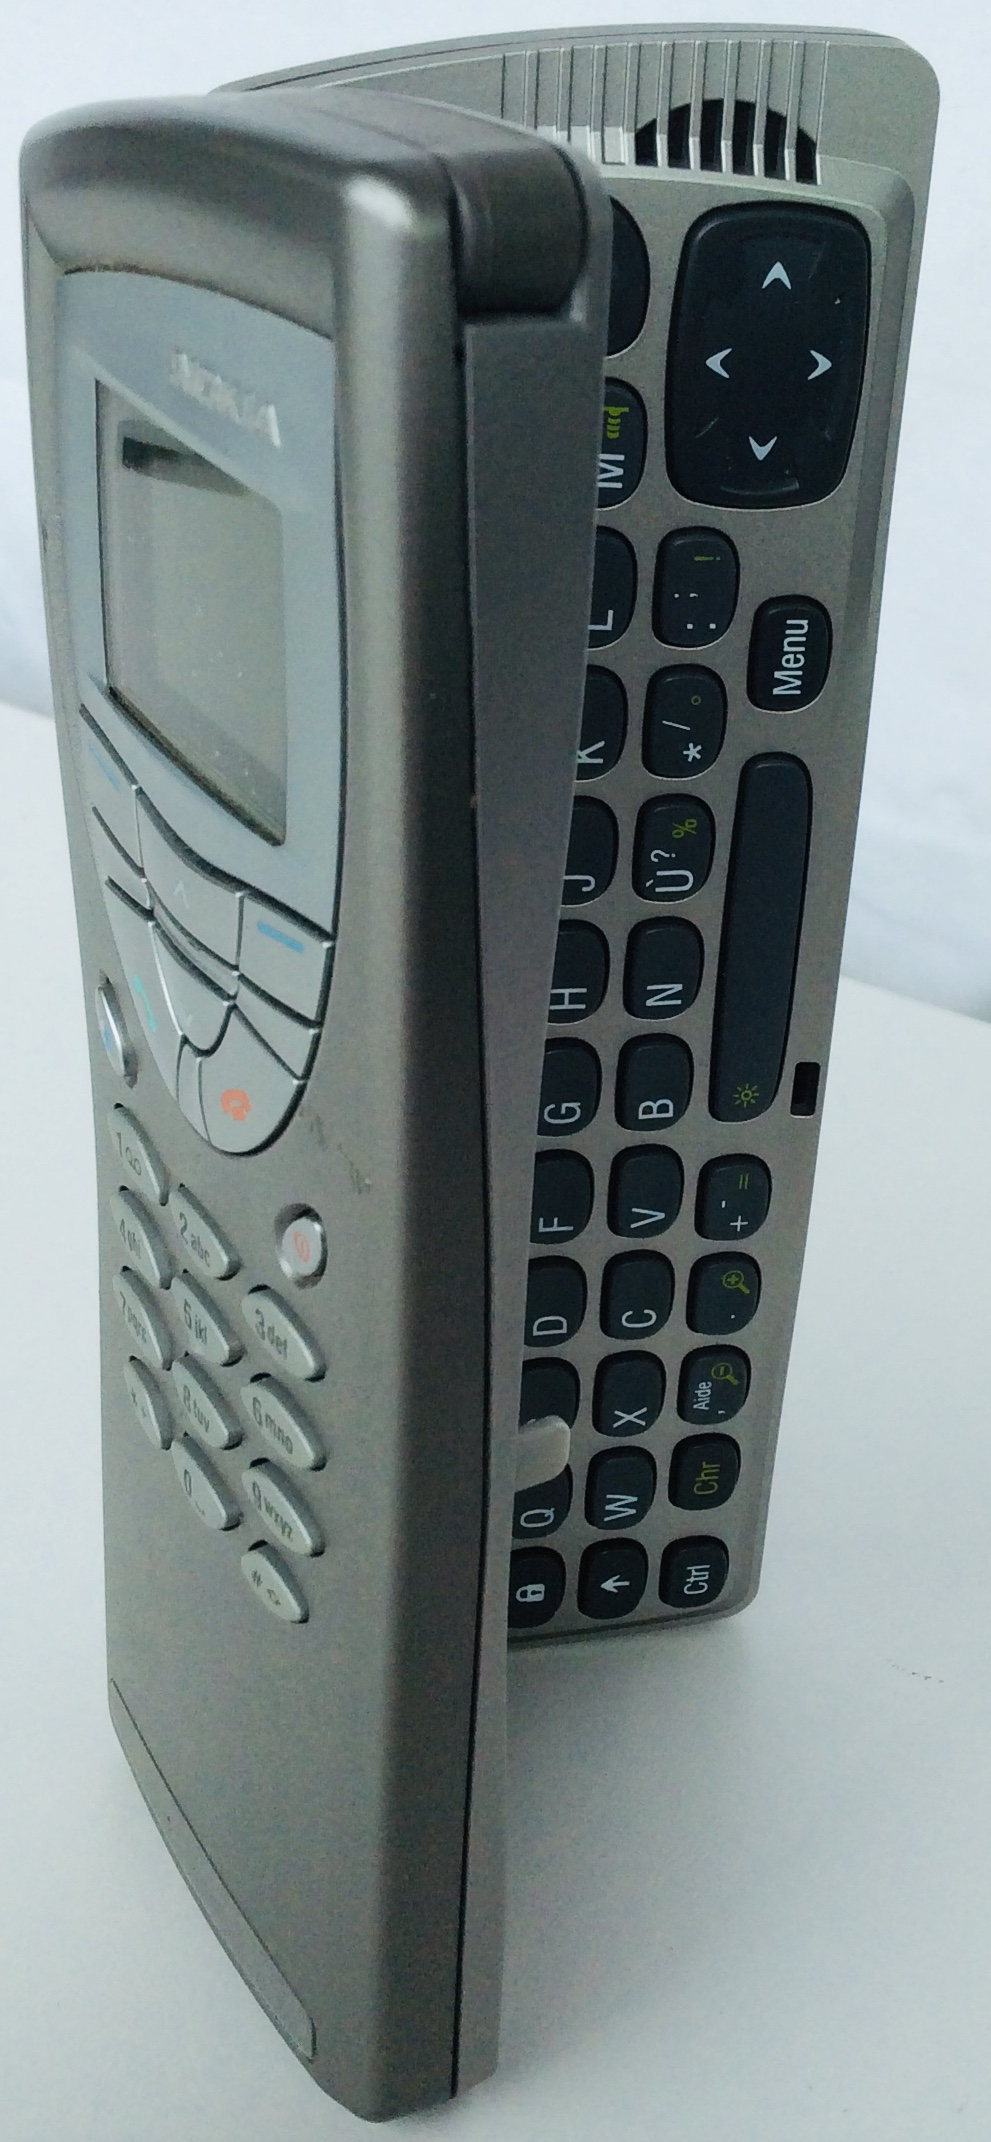 2002 Nokia 9210 Communicator Cell Phone